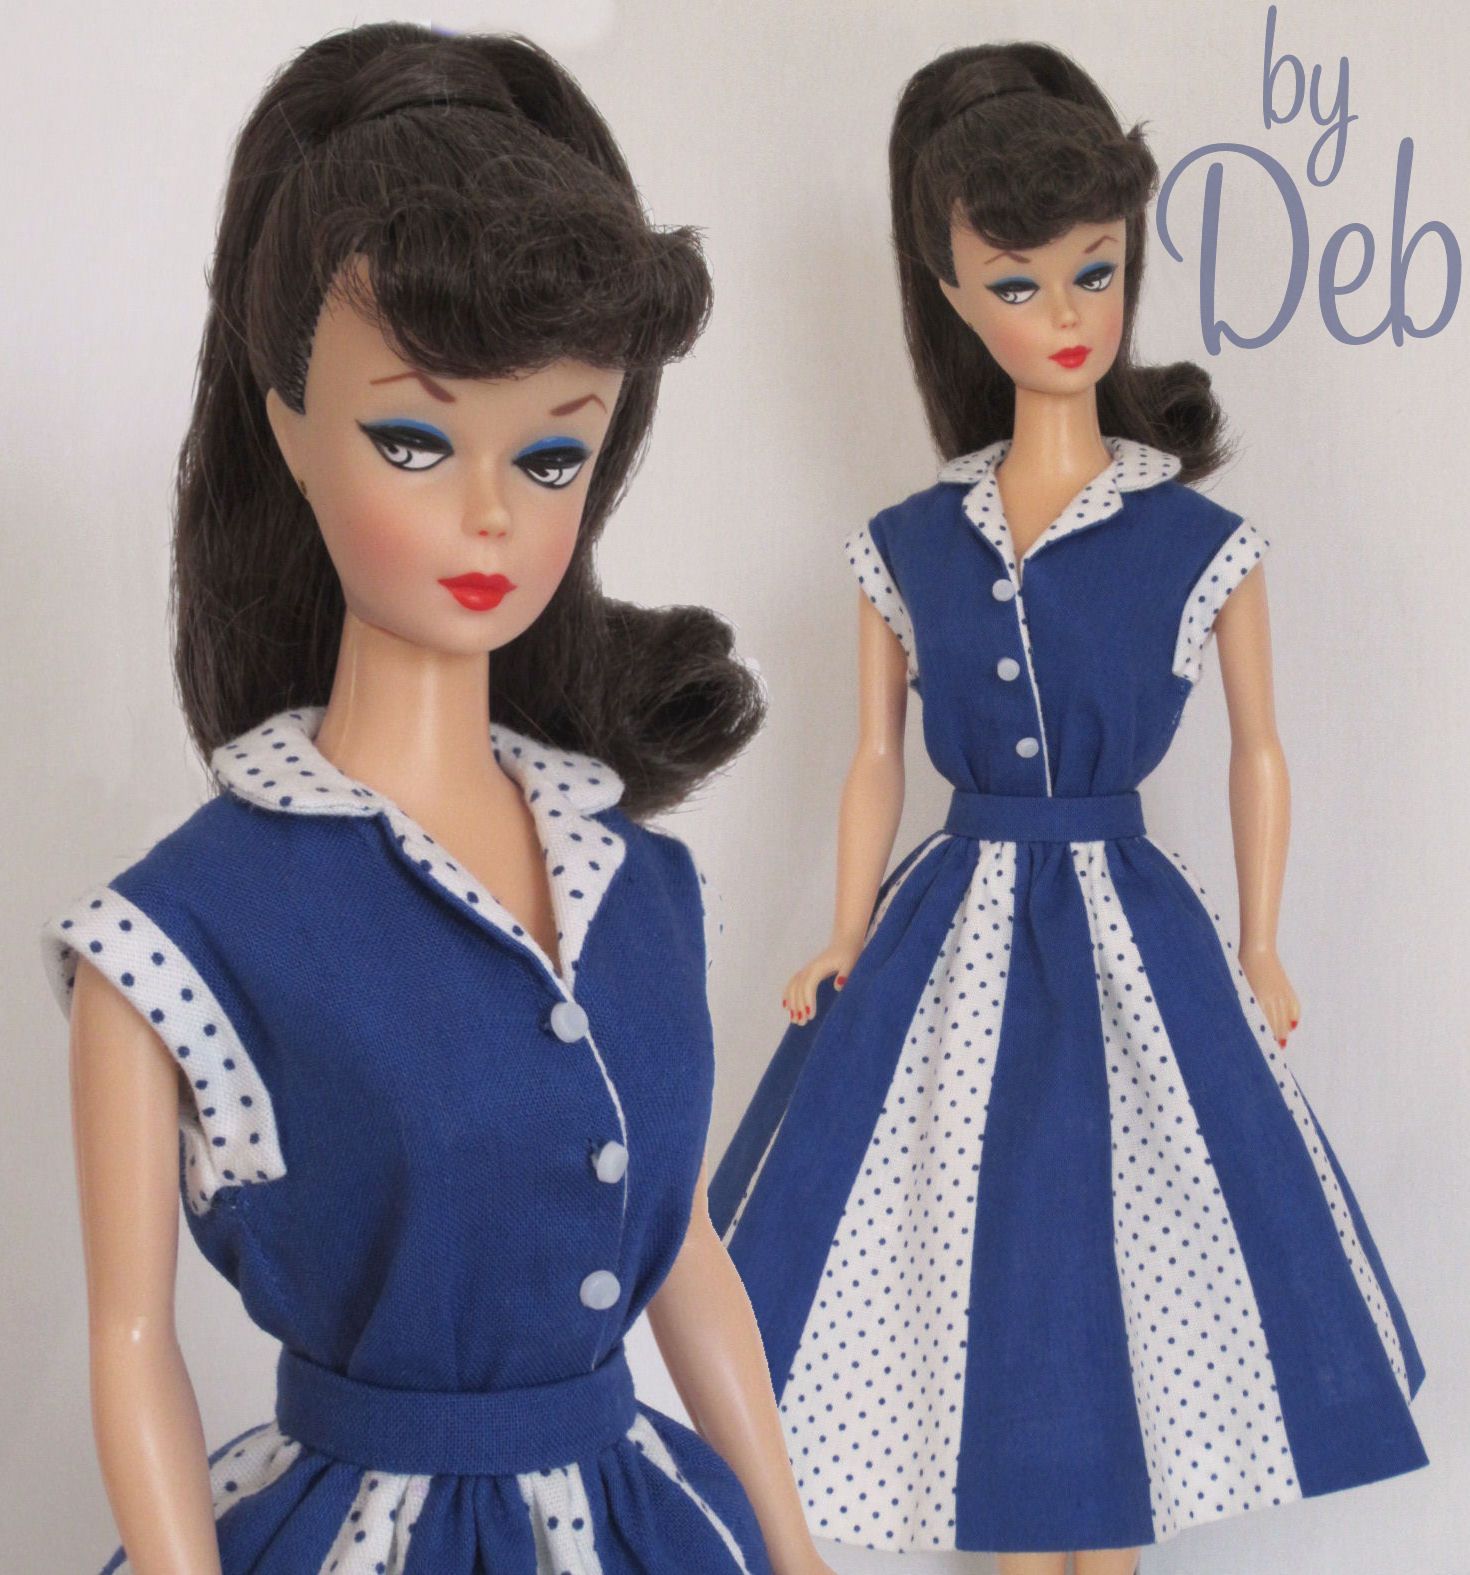 Game Time Vintage Barbie Doll Dress Reproduction Repro Barbie Clothes Fashions Ebay Doll Dress Vintage Barbie Clothes Barbie Clothes